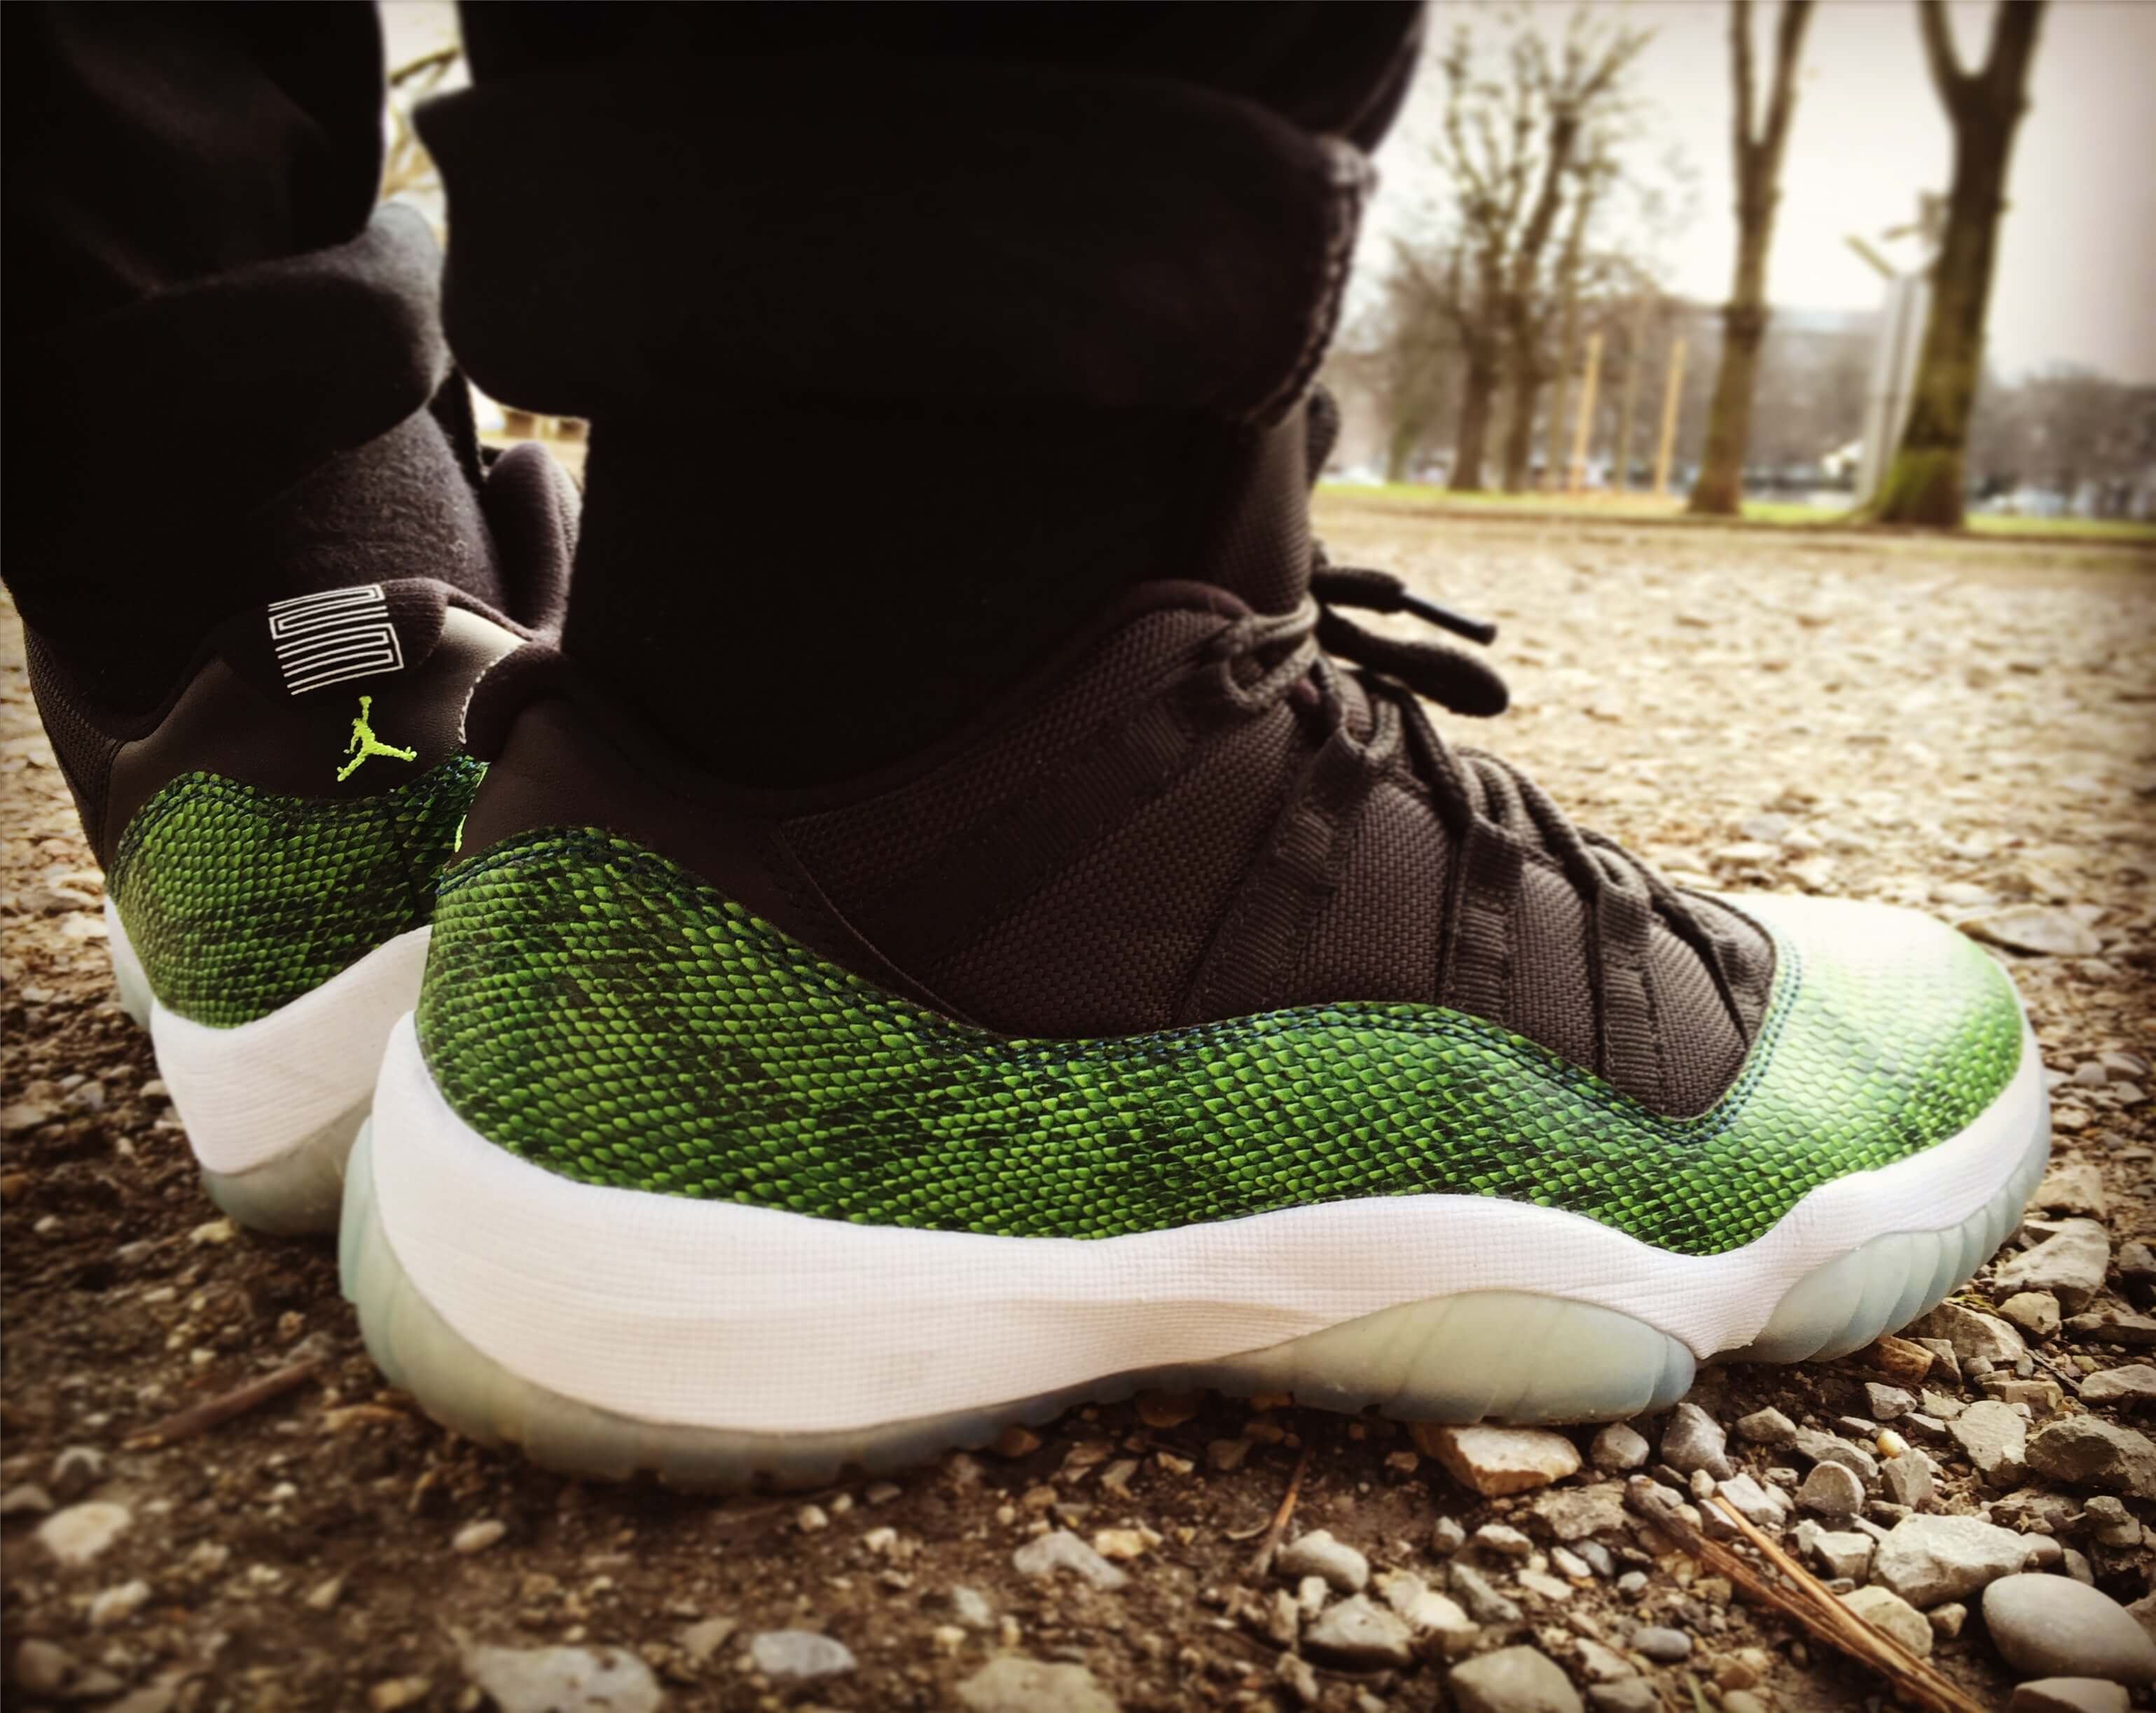 Air-Jordan-11-Low-Green-Snake-Nightshade-Rear-View-Benstah